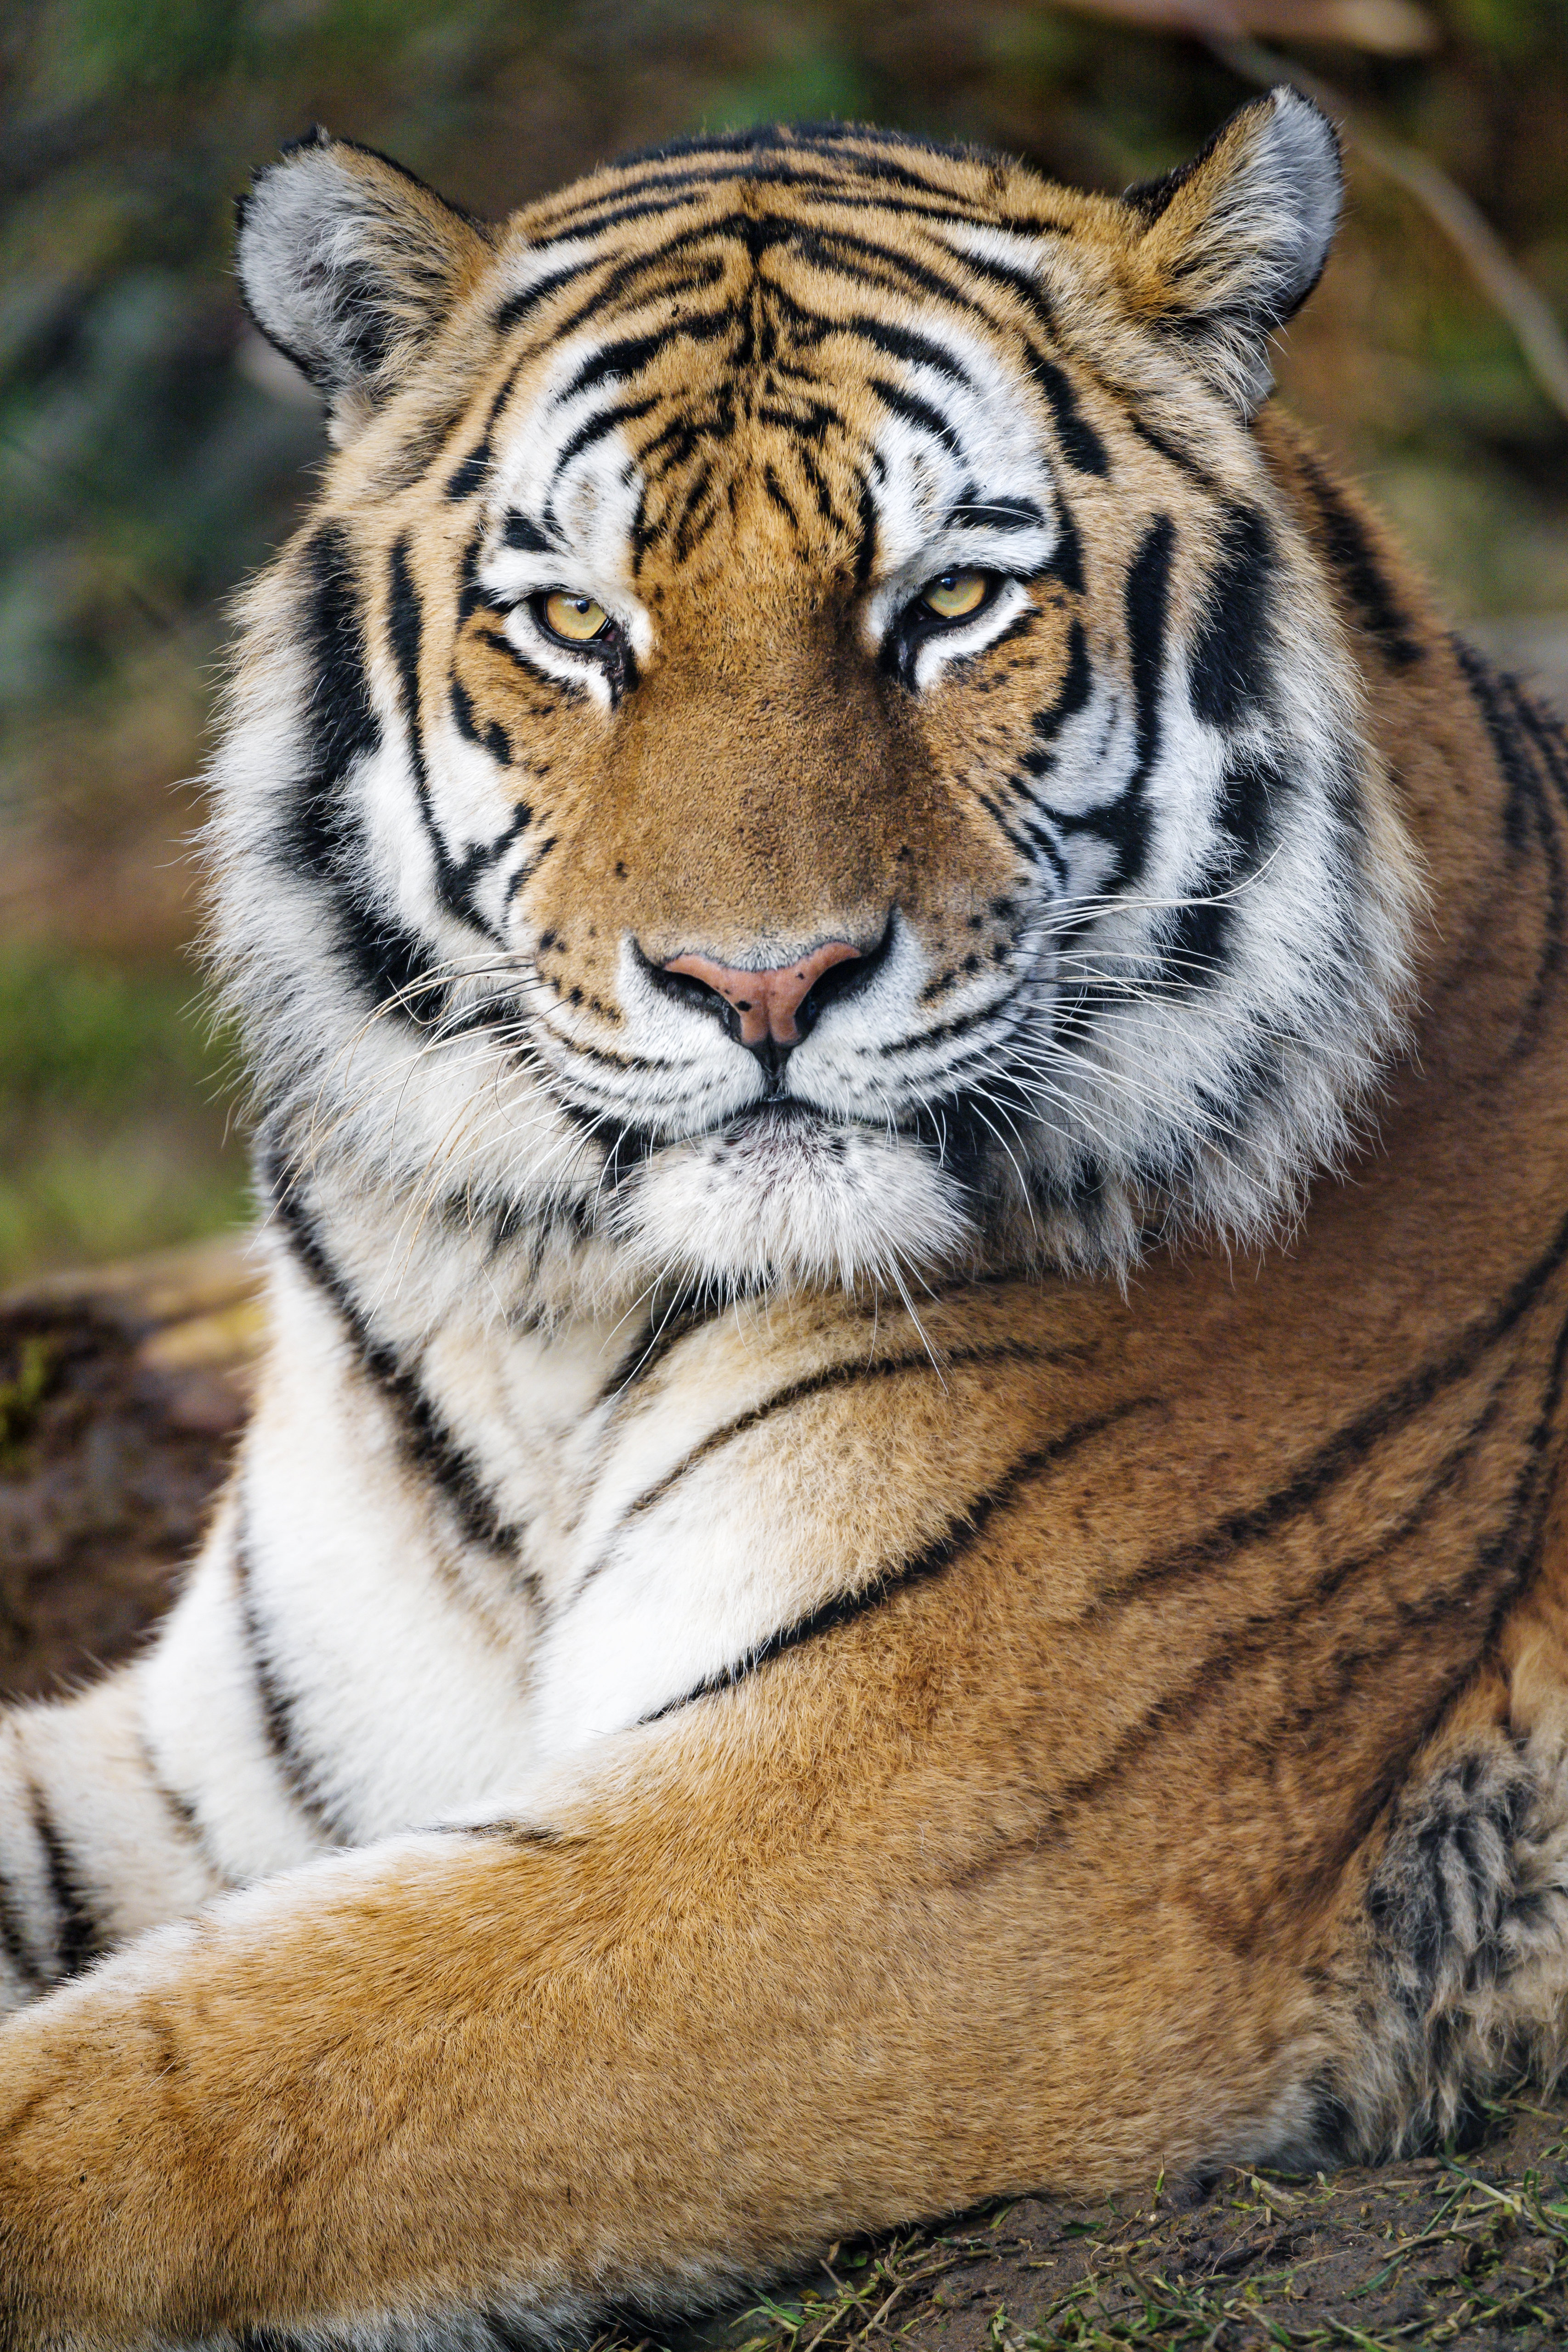 128022 download wallpaper Animals, Tiger, Big Cat, Predator, Sight, Opinion, Stripes, Strips screensavers and pictures for free